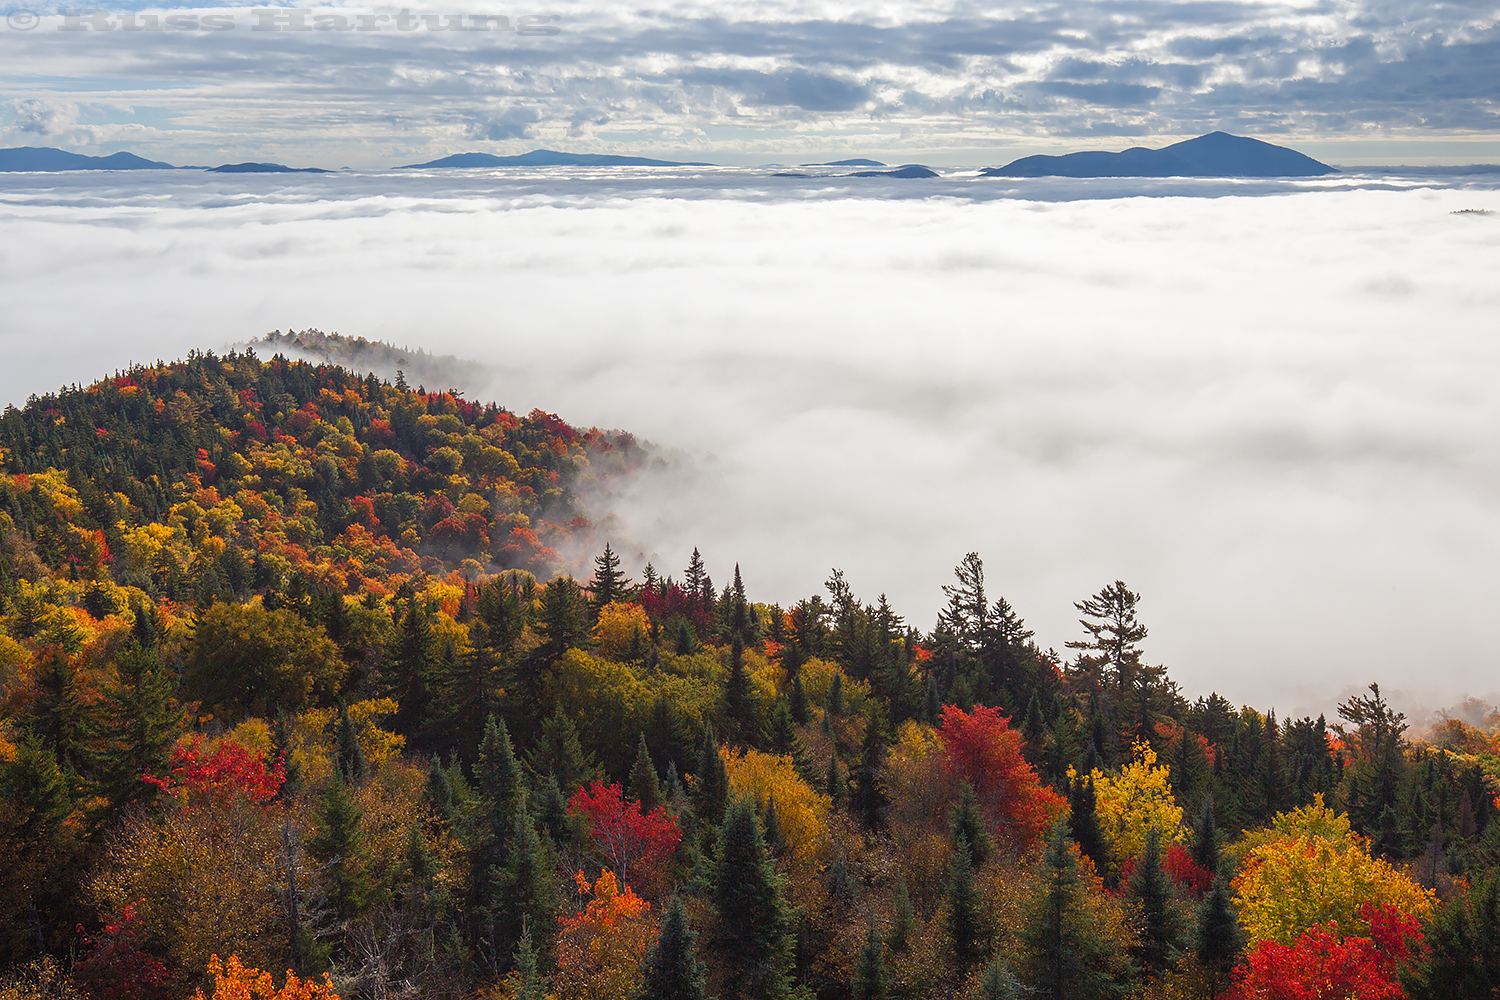 Looking east from the Goodnow Mountain fire tower over a cloud inversion in the early morning.